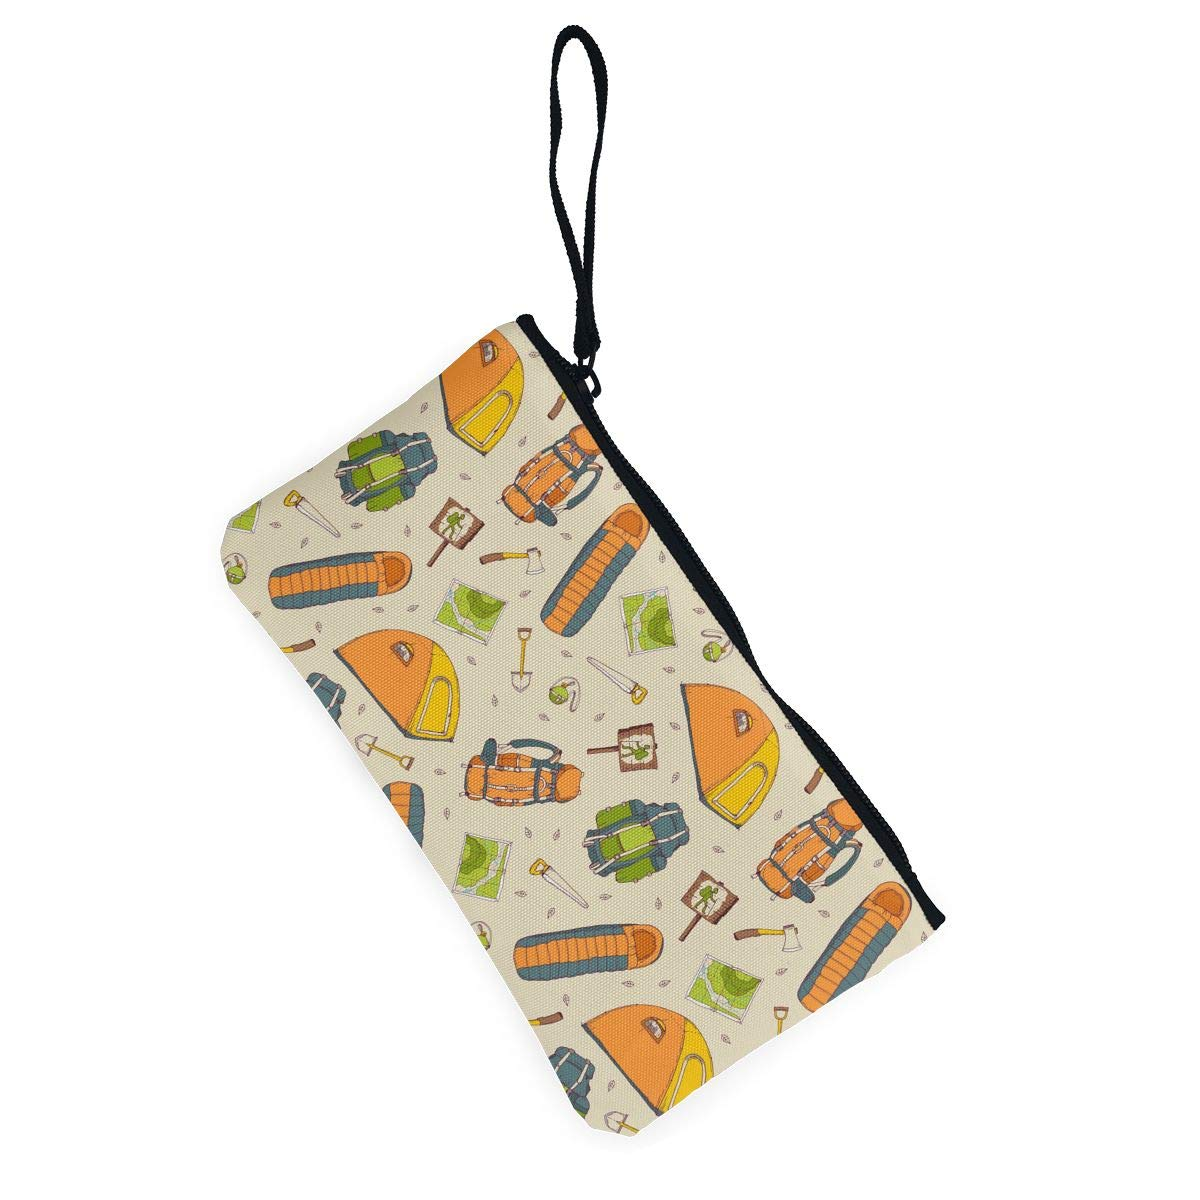 Womens Canvas Coin Purse Zipper Small Purse Wallets Cellphone Clutch Purse With Wrist Strap Picnic,travel,camping Pattern